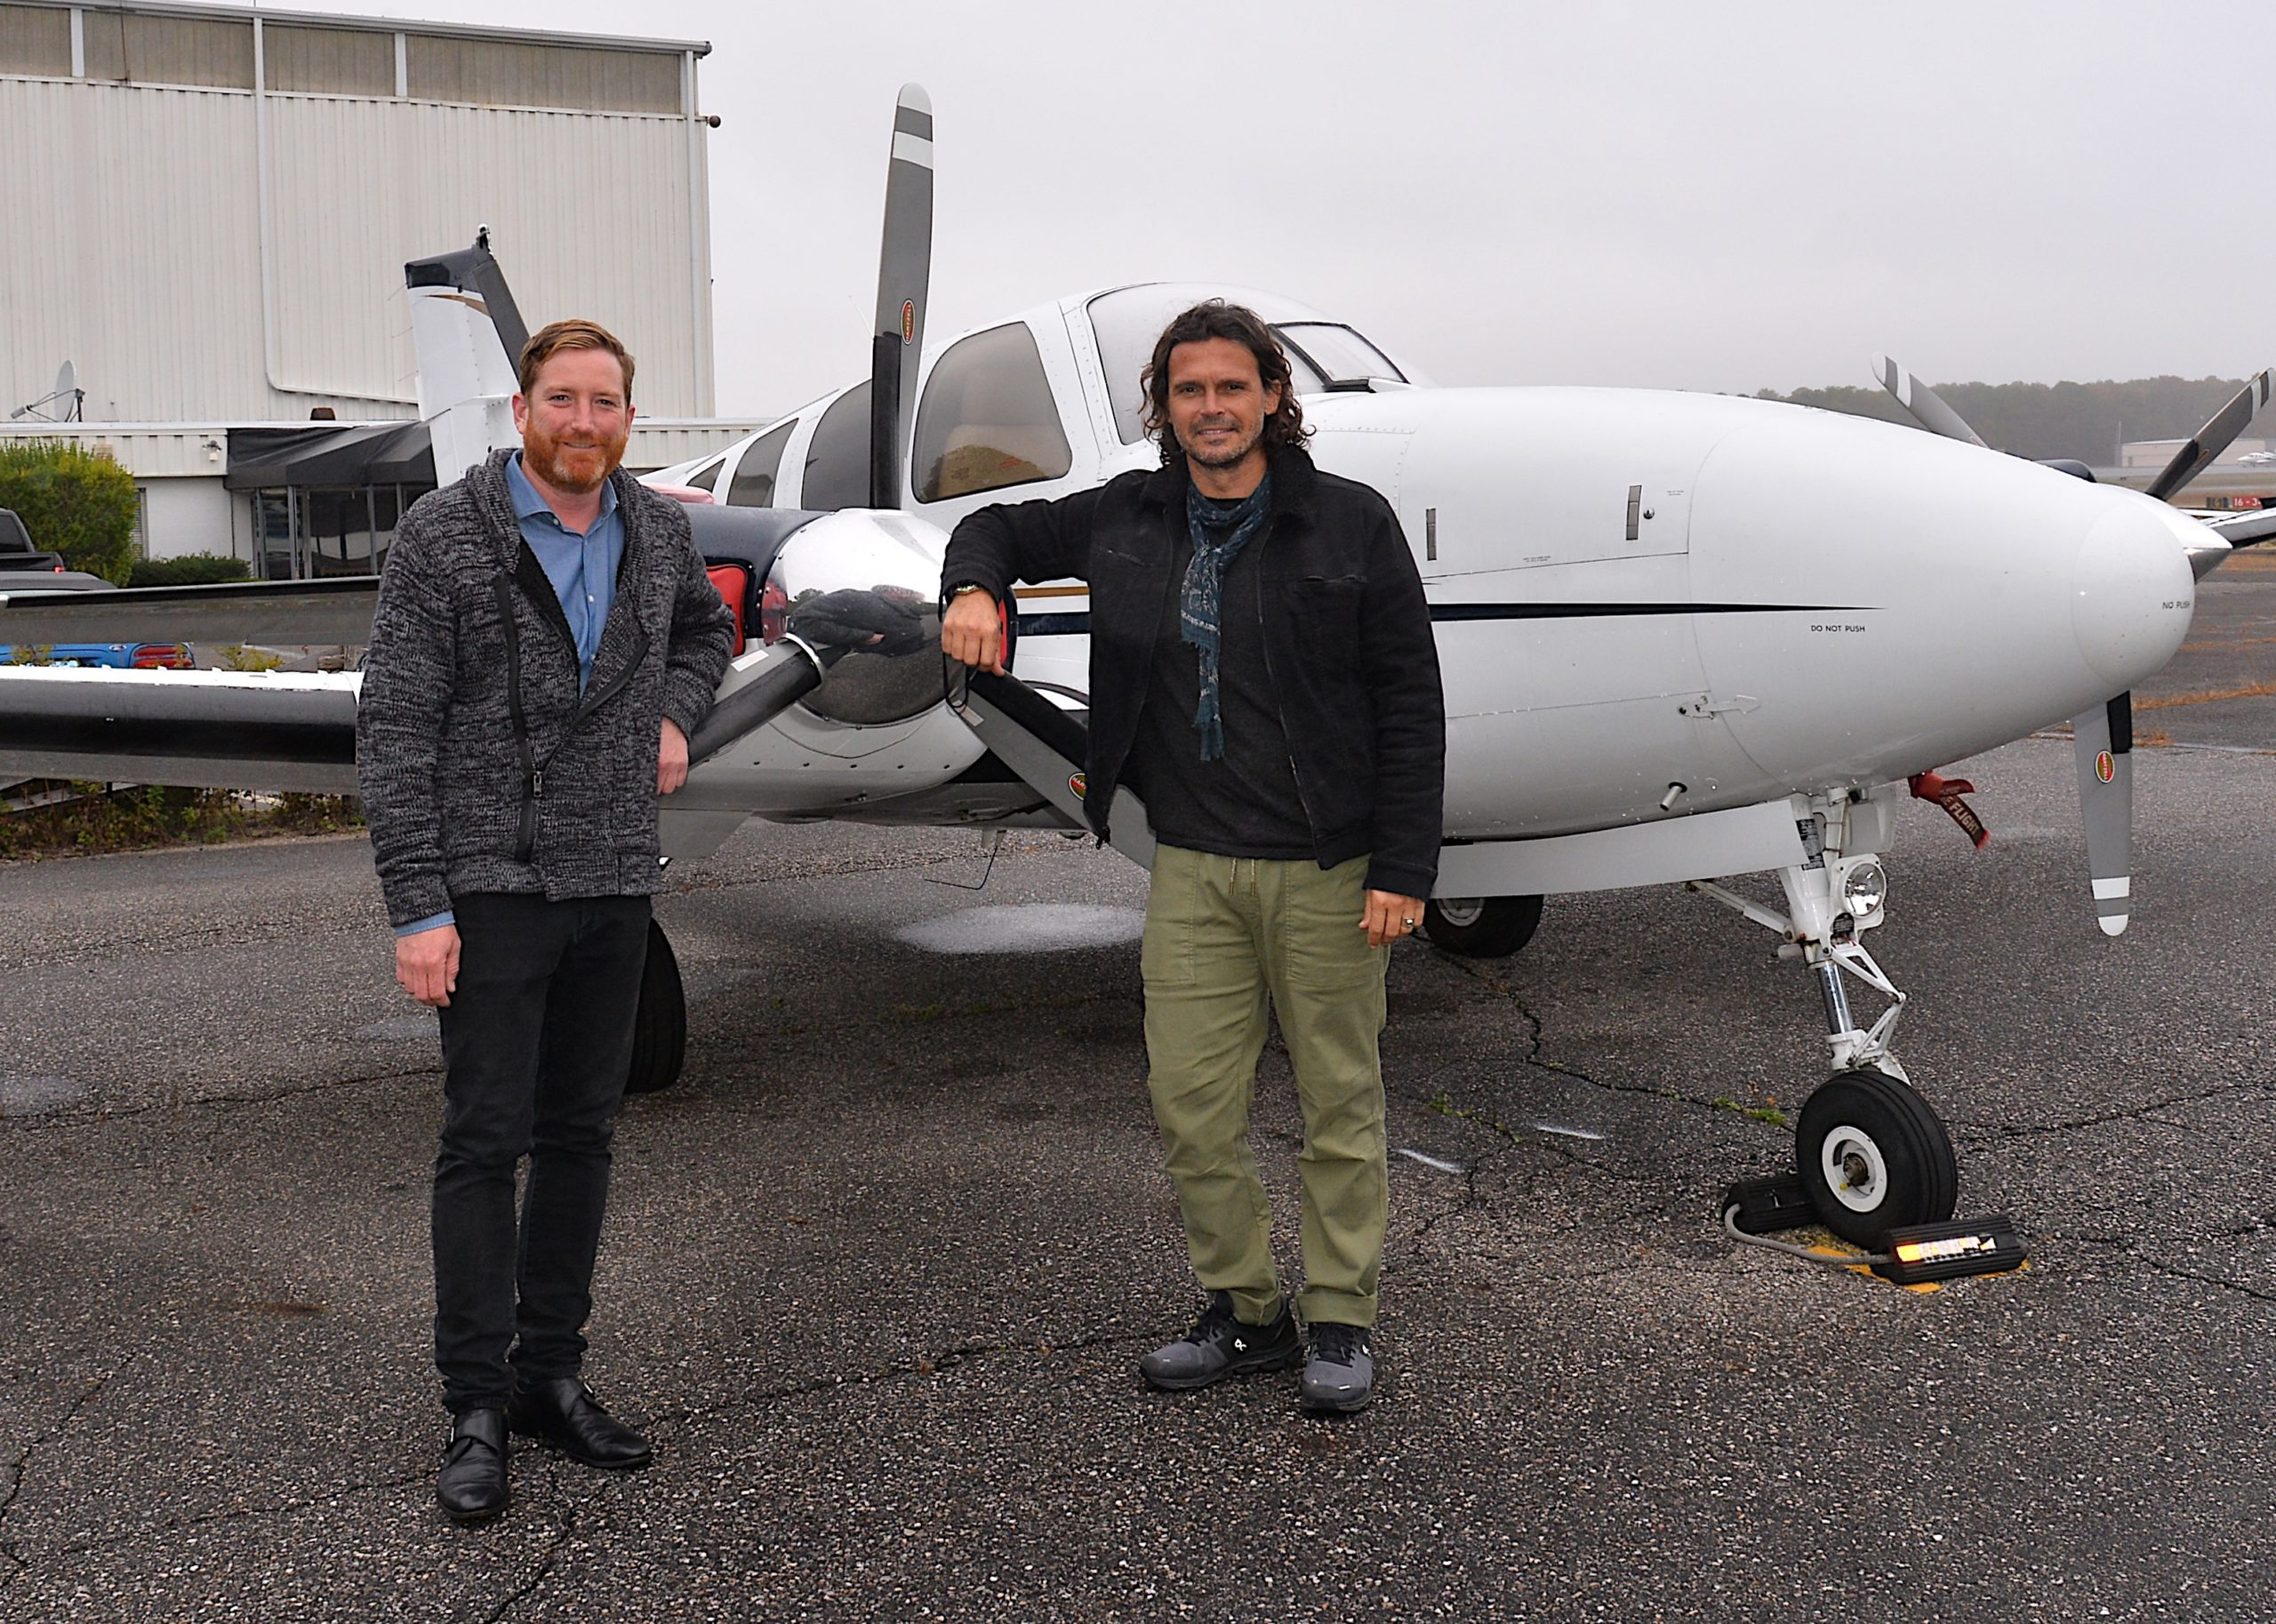 Mike Norbeck and Gianpaolo de Felice, founders of the East Hampton Community Alliance, a new group that is trying to bring more awareness to the fear among pilots that East Hampton Airport could be closed down in 2021.